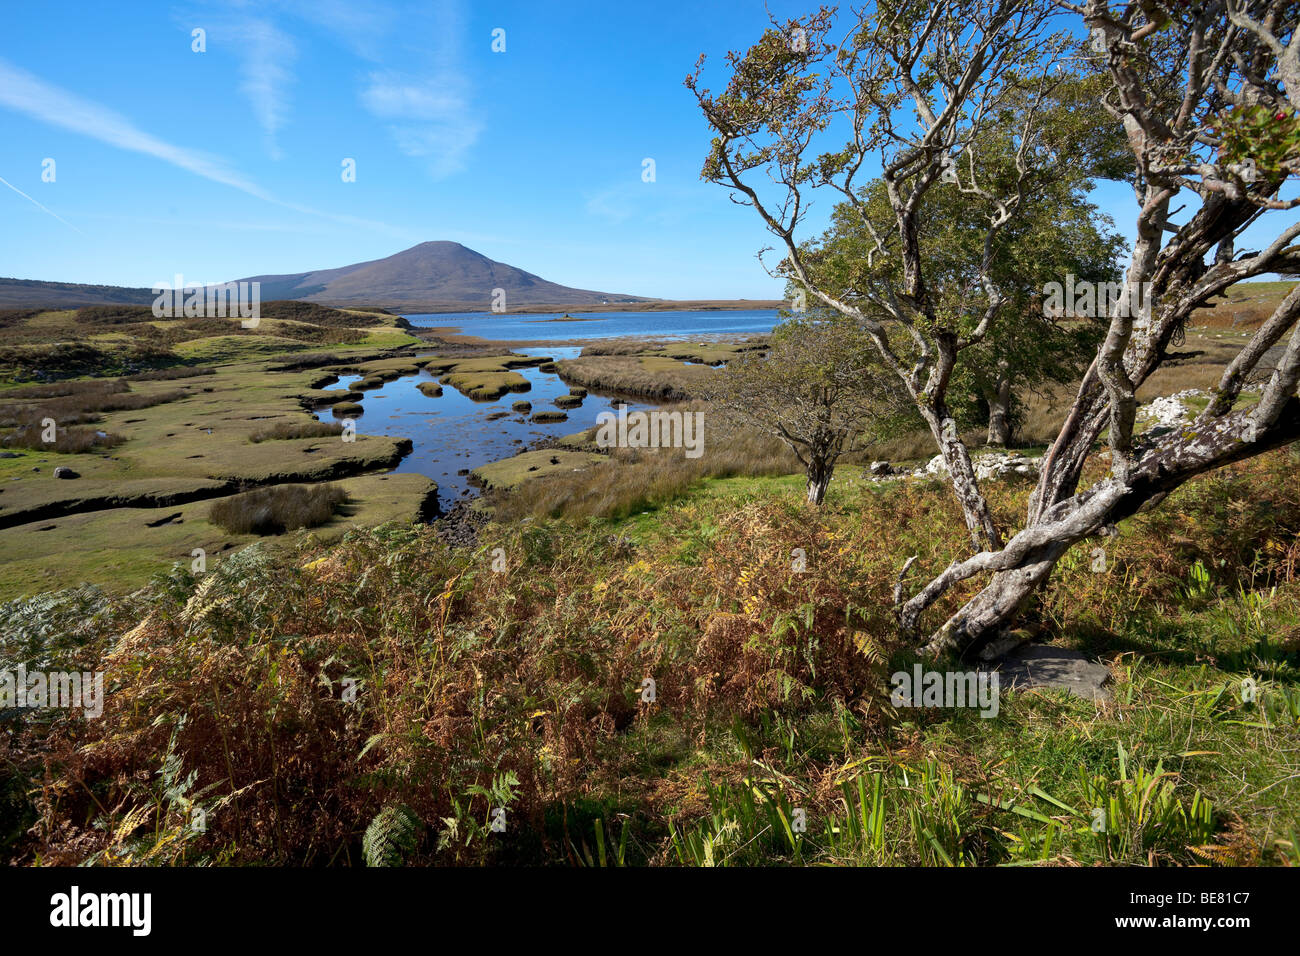 The mountain of slievemore on Achill island taken from the mainland in County Mayo - Stock Image